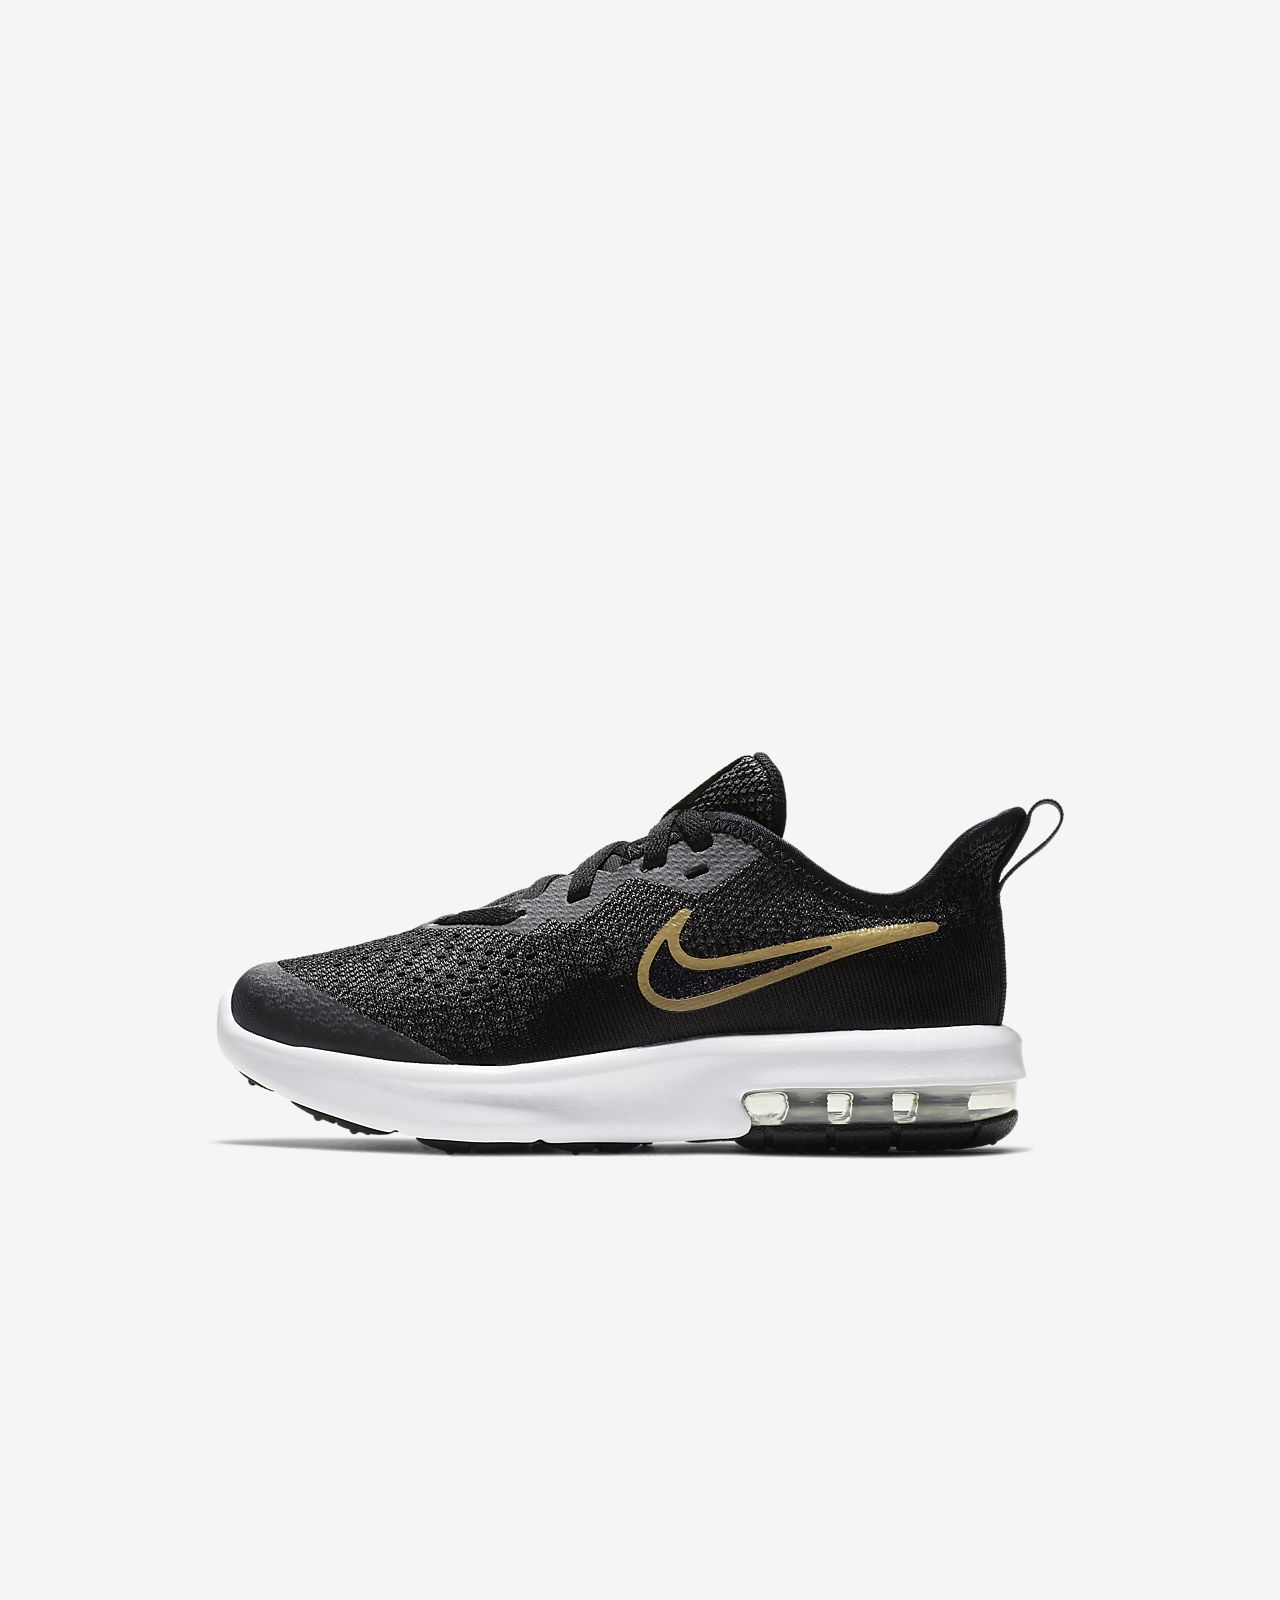 Nike Max Shine Air Pour EnfantBe Chaussure Jeune Sequent 4 0PZNwOkXn8